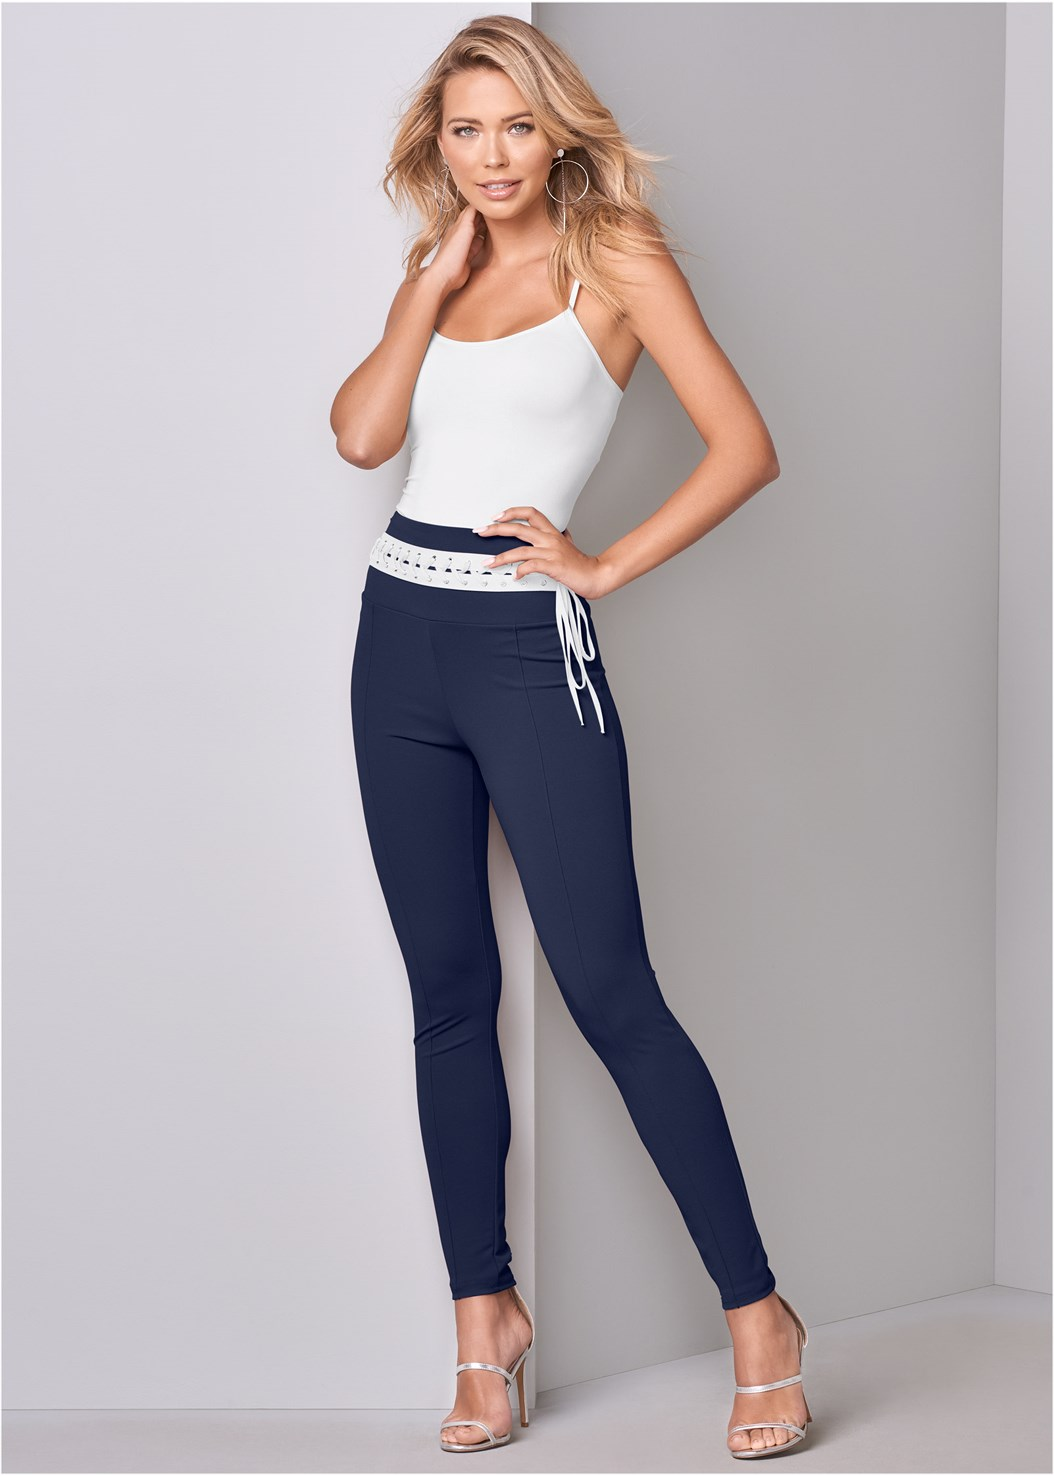 Laced Waistband Leggings,Seamless Cami,High Heel Strappy Sandals,Hoop Detail Earrings